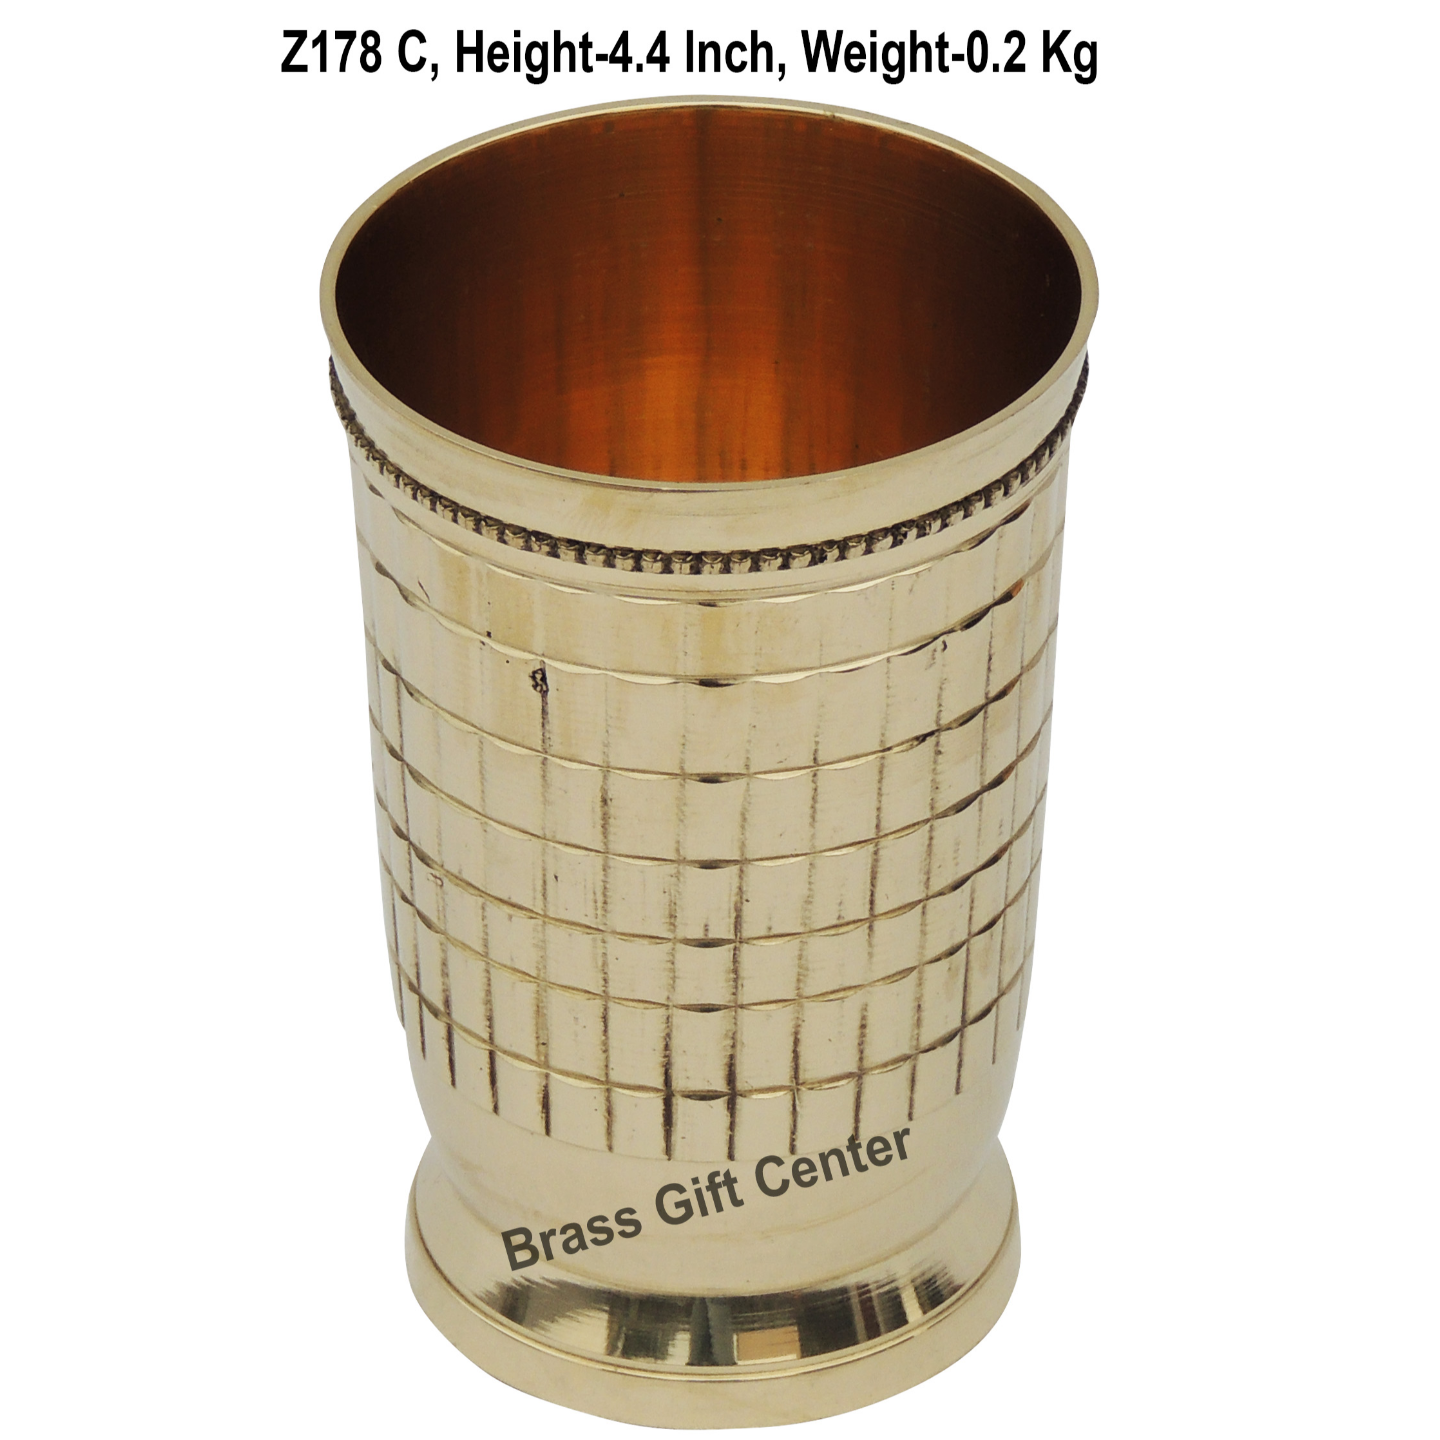 Brass Glass Firki 250 Ml -  2.8*2.8*4.4 Inch  (Z178 C)